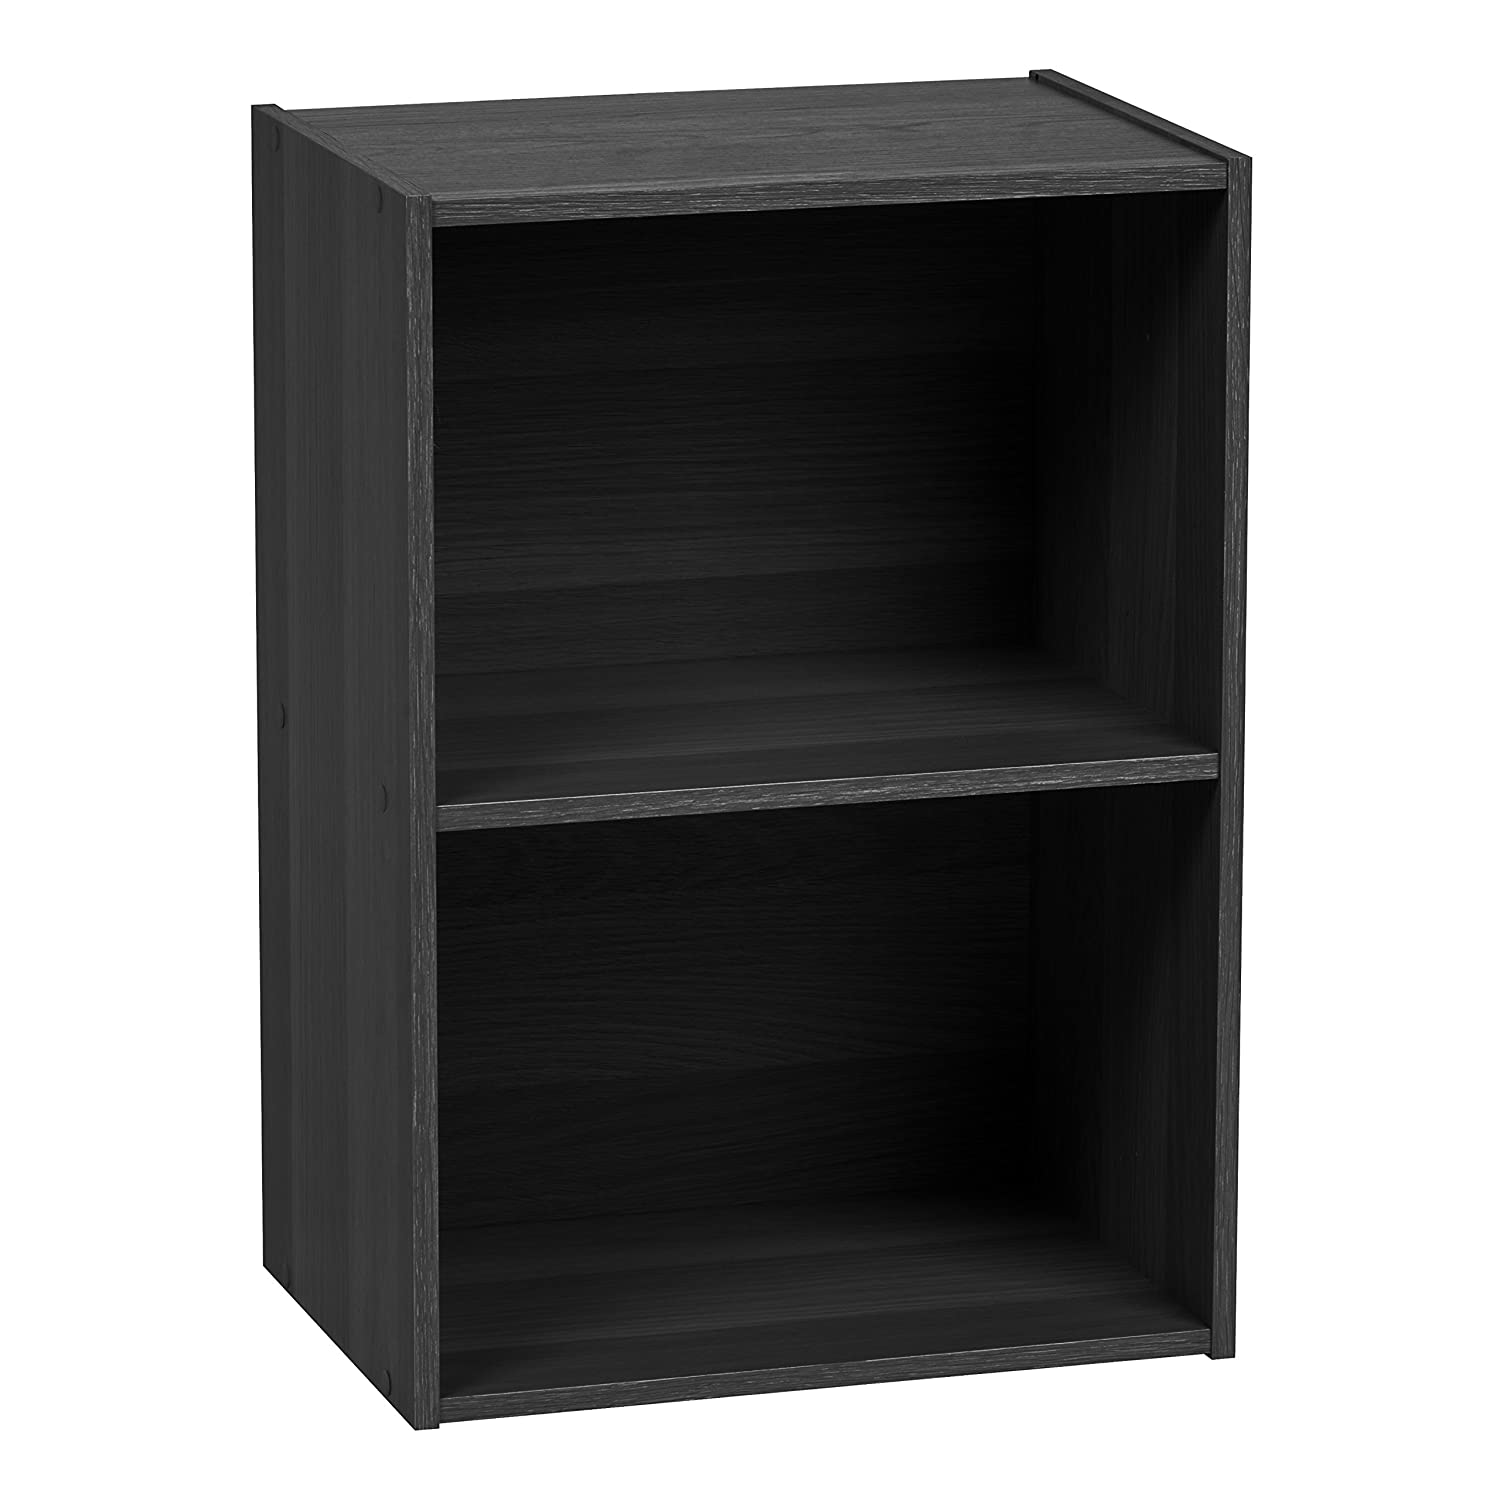 IRIS USA 596480 2-Tier Wood Storage Shelf Black